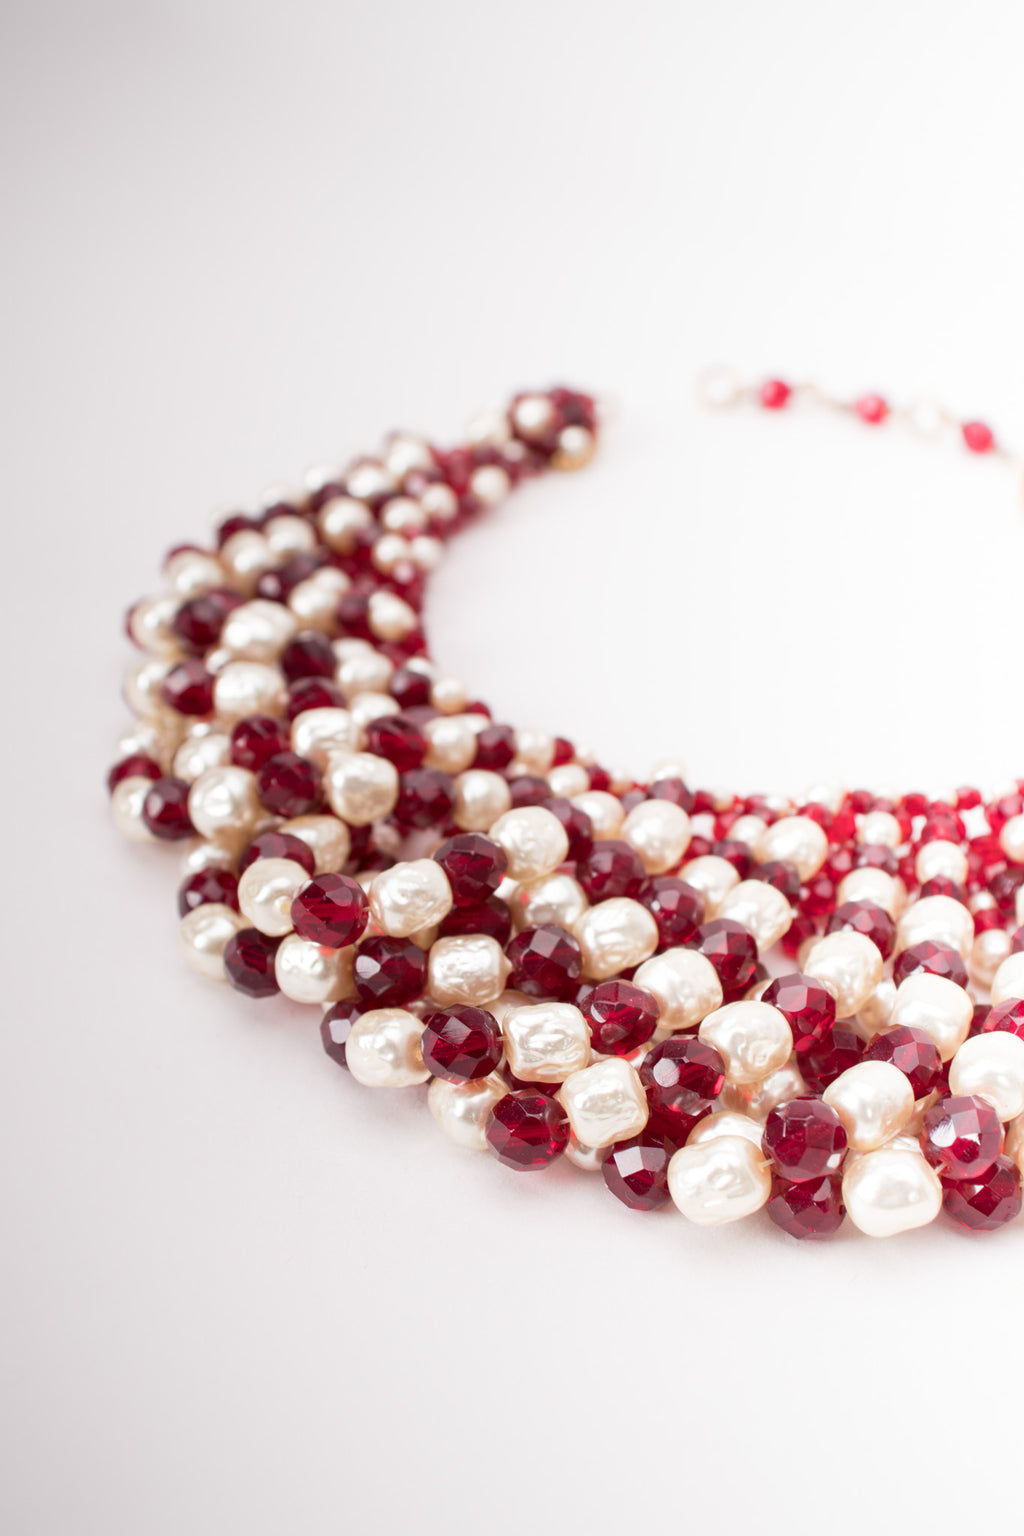 Coppola e Toppo Draped Pearl Crystal Bead Necklace